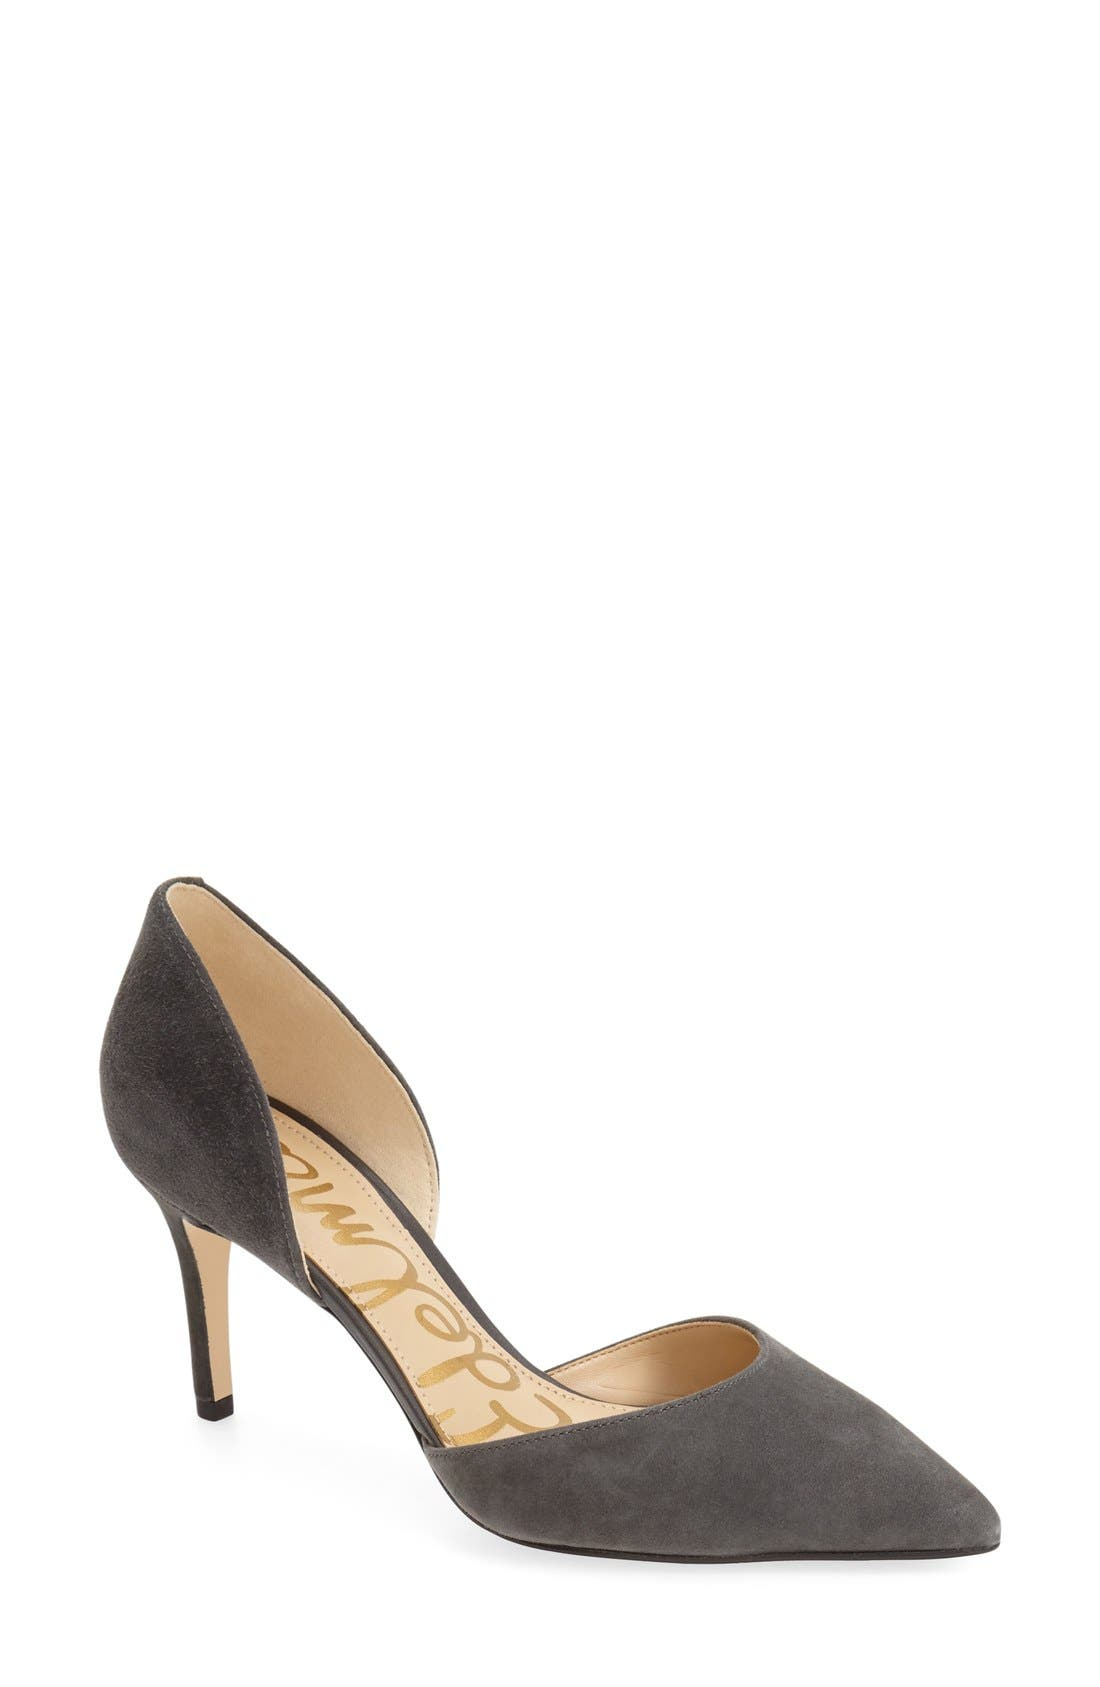 'Telsa' d'Orsay Pointy Toe Pump,                             Main thumbnail 7, color,